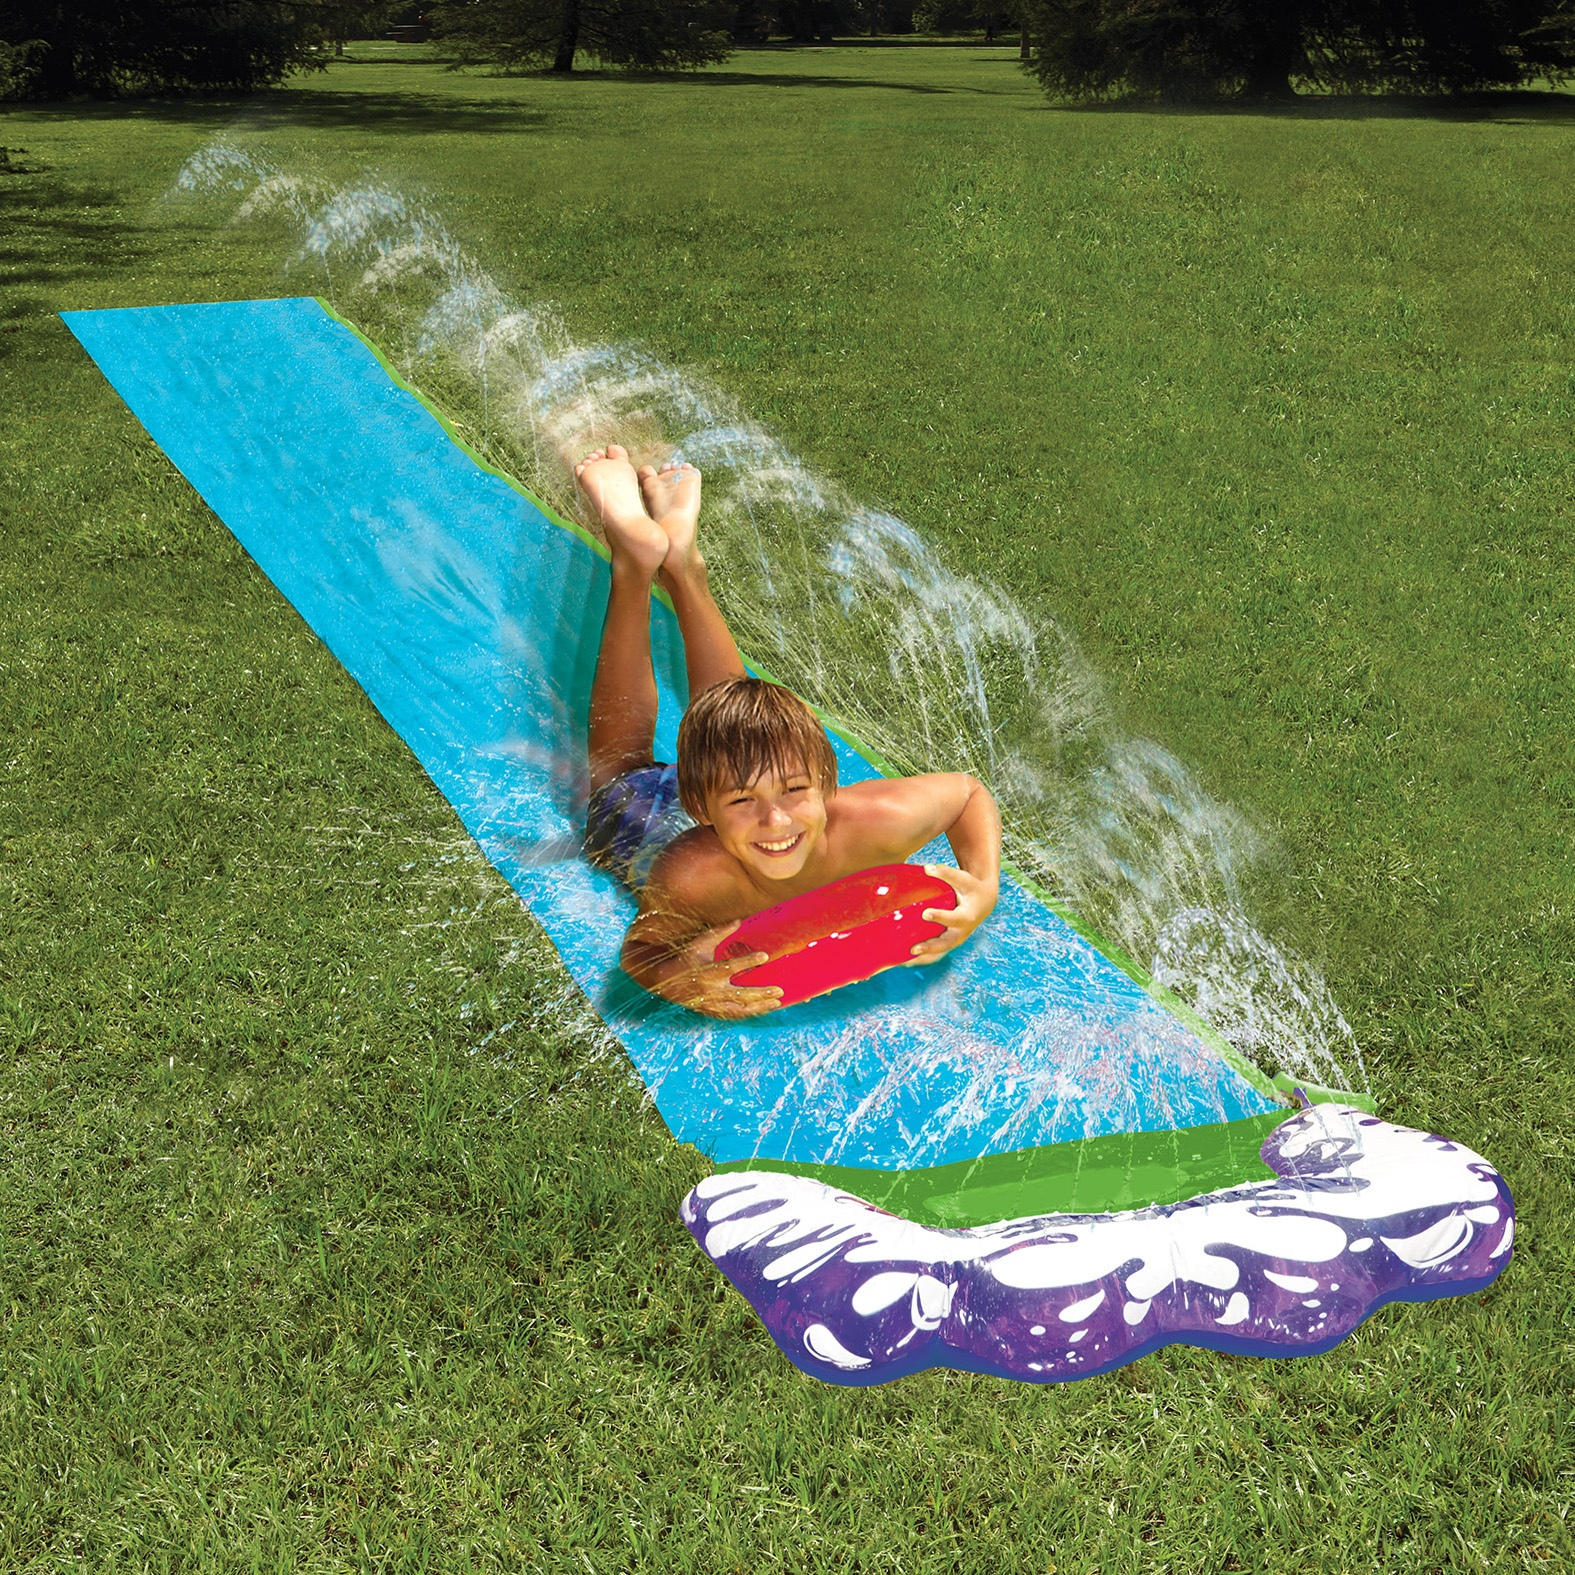 Inflatable Pool Slide Uk: Inflatable Outdoor Garden Water Slide Sprinkler Splash Mat